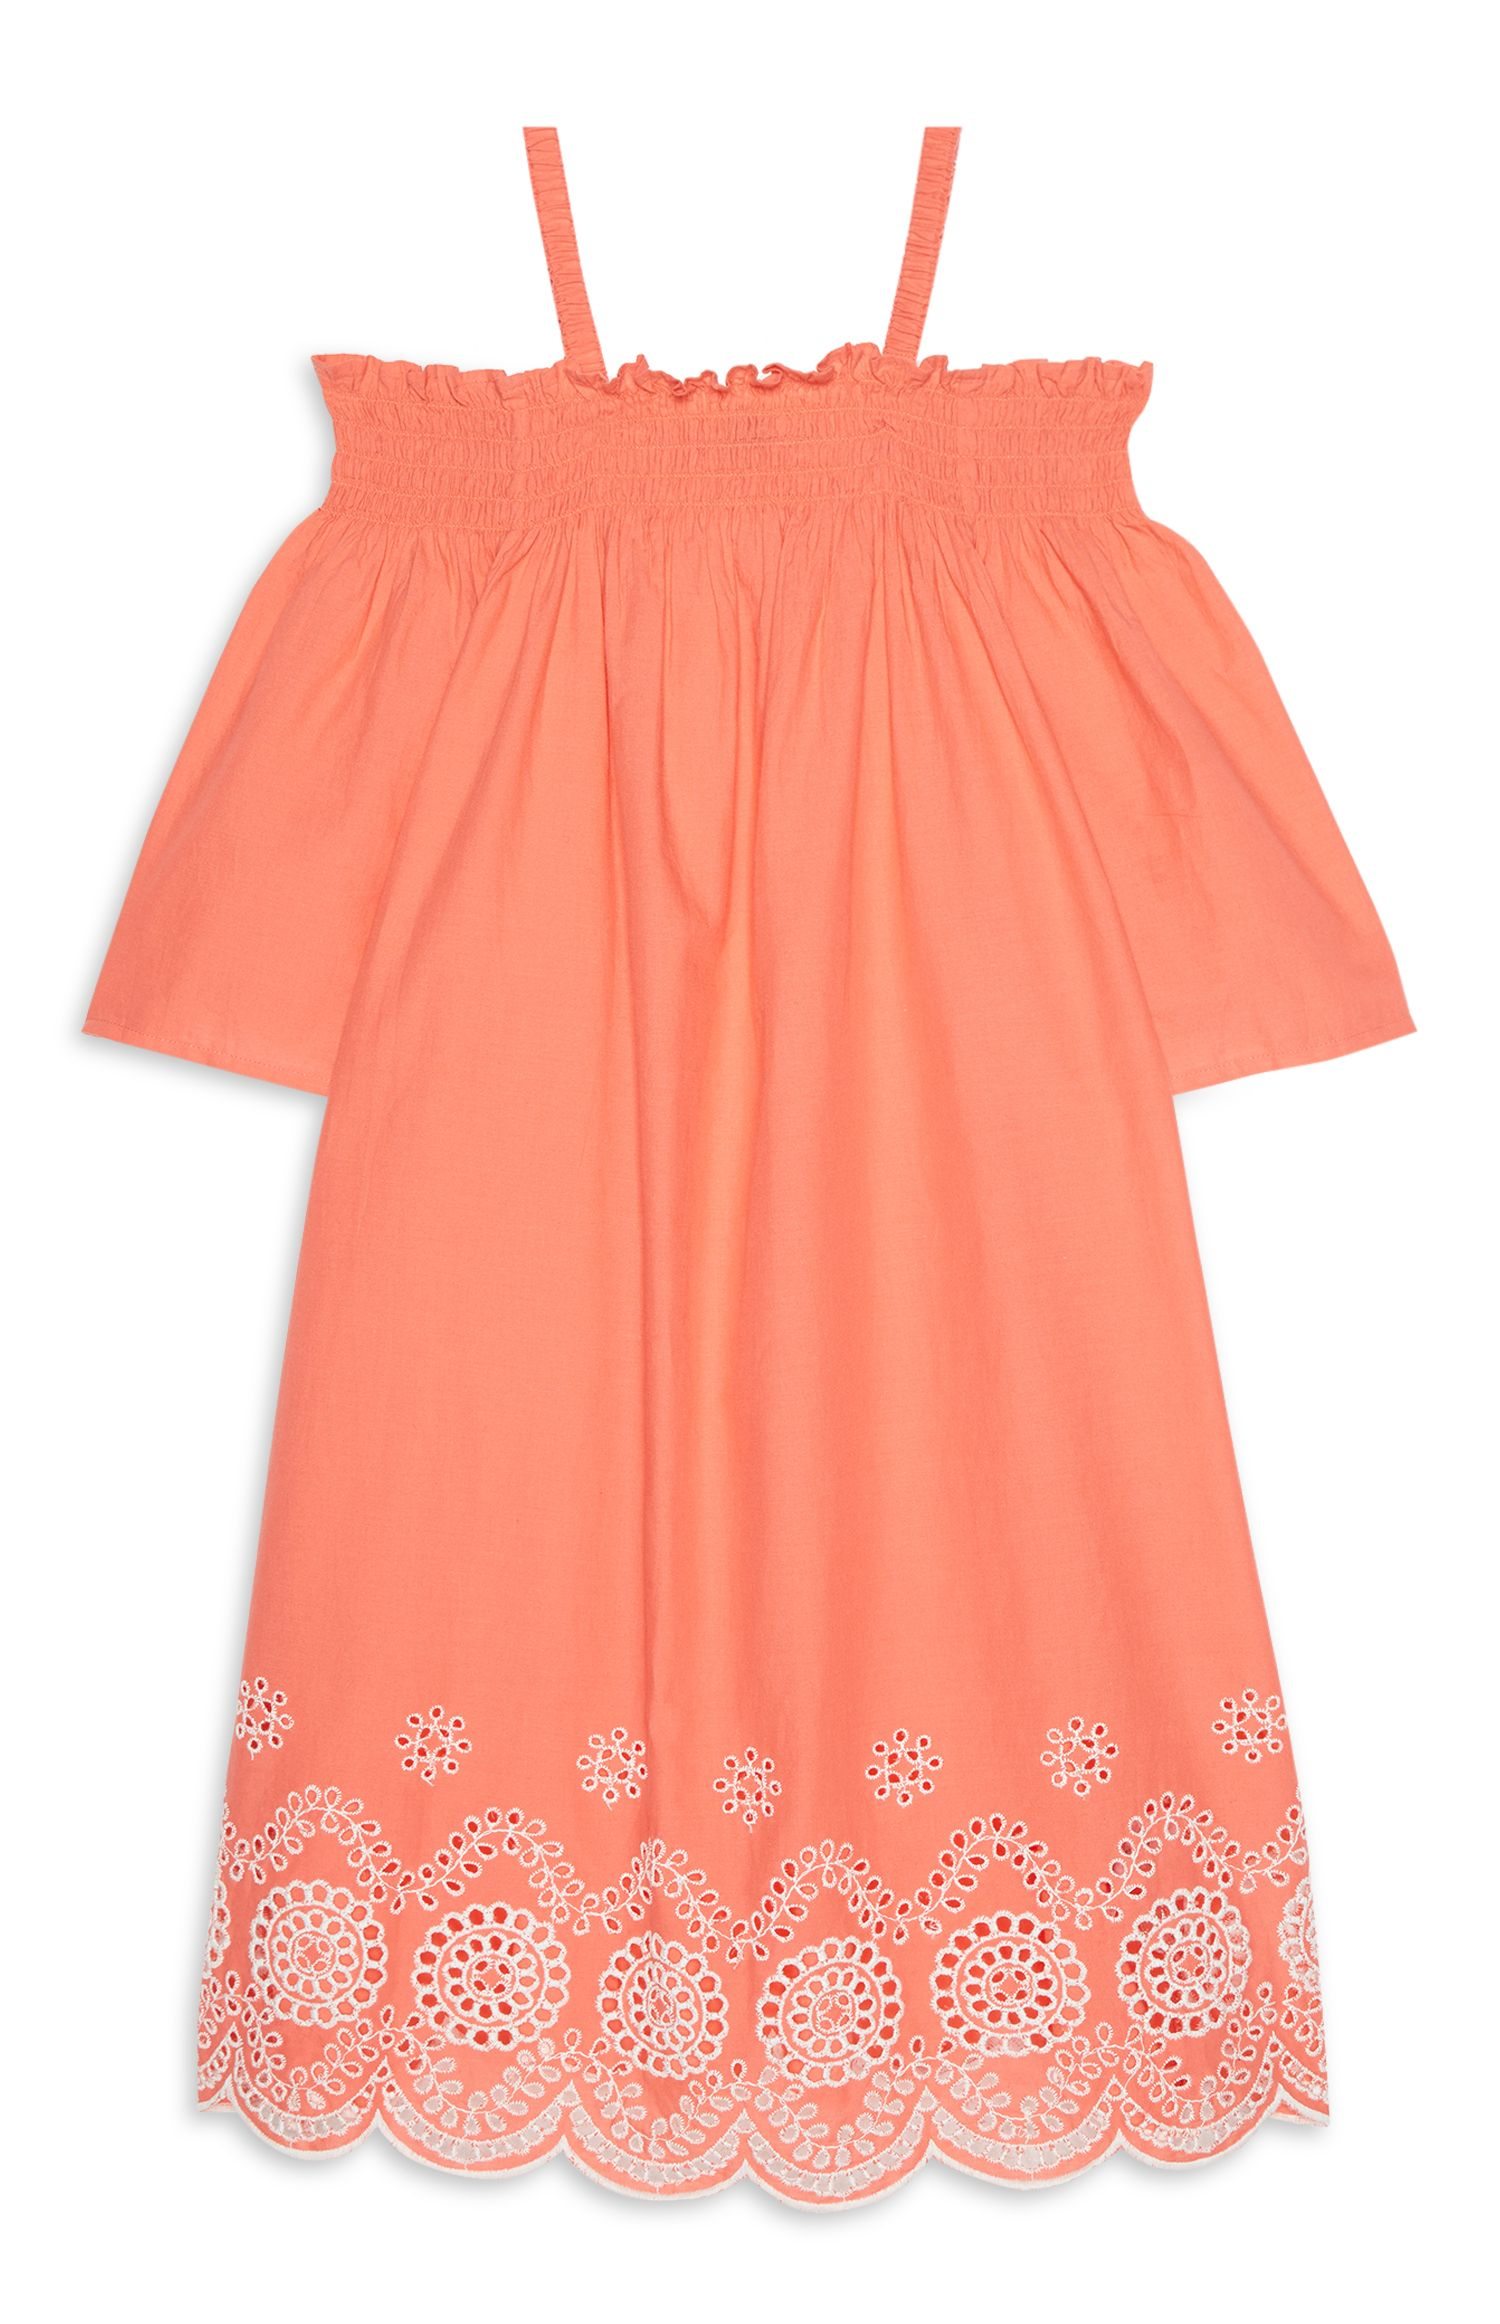 7241ff295b4dc Best Primark summer dresses in the UK for 2018